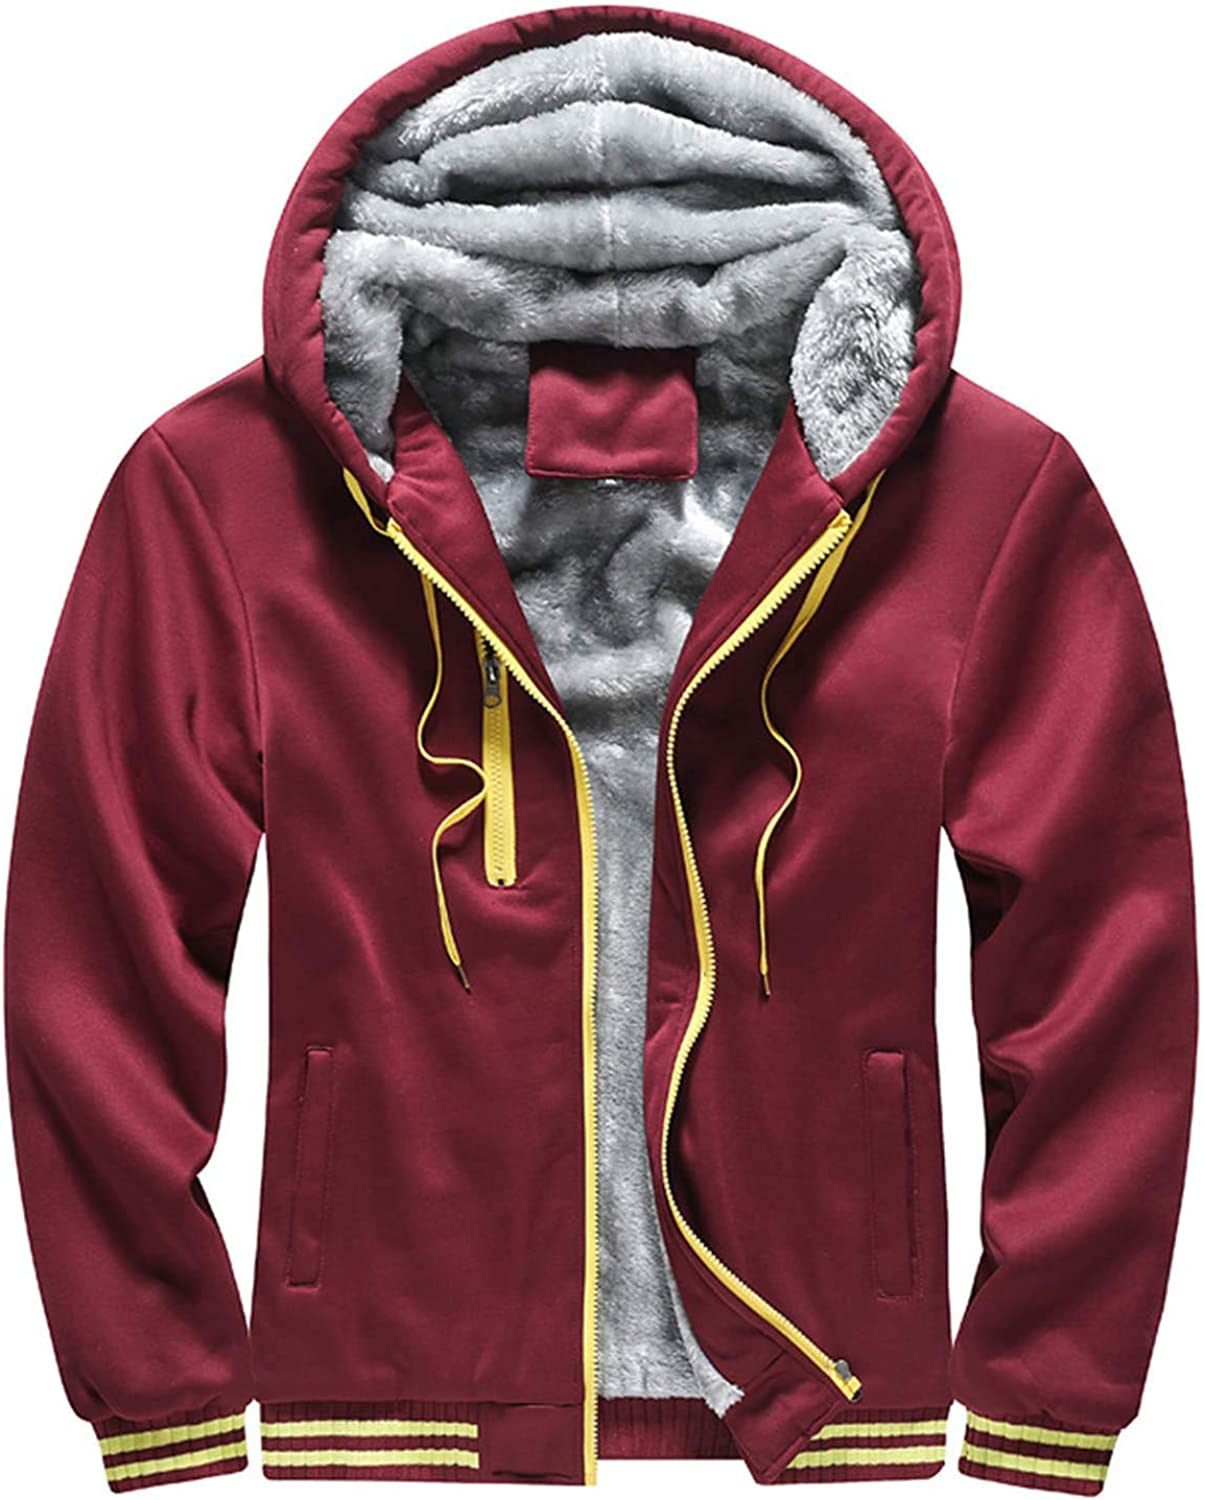 Clearance Heavyweight Fleece Hoodie for Men Sherpa Lined Full Zip Up Long Sleeve Winter Jacket Coat Pullover (Red Wine,Large)